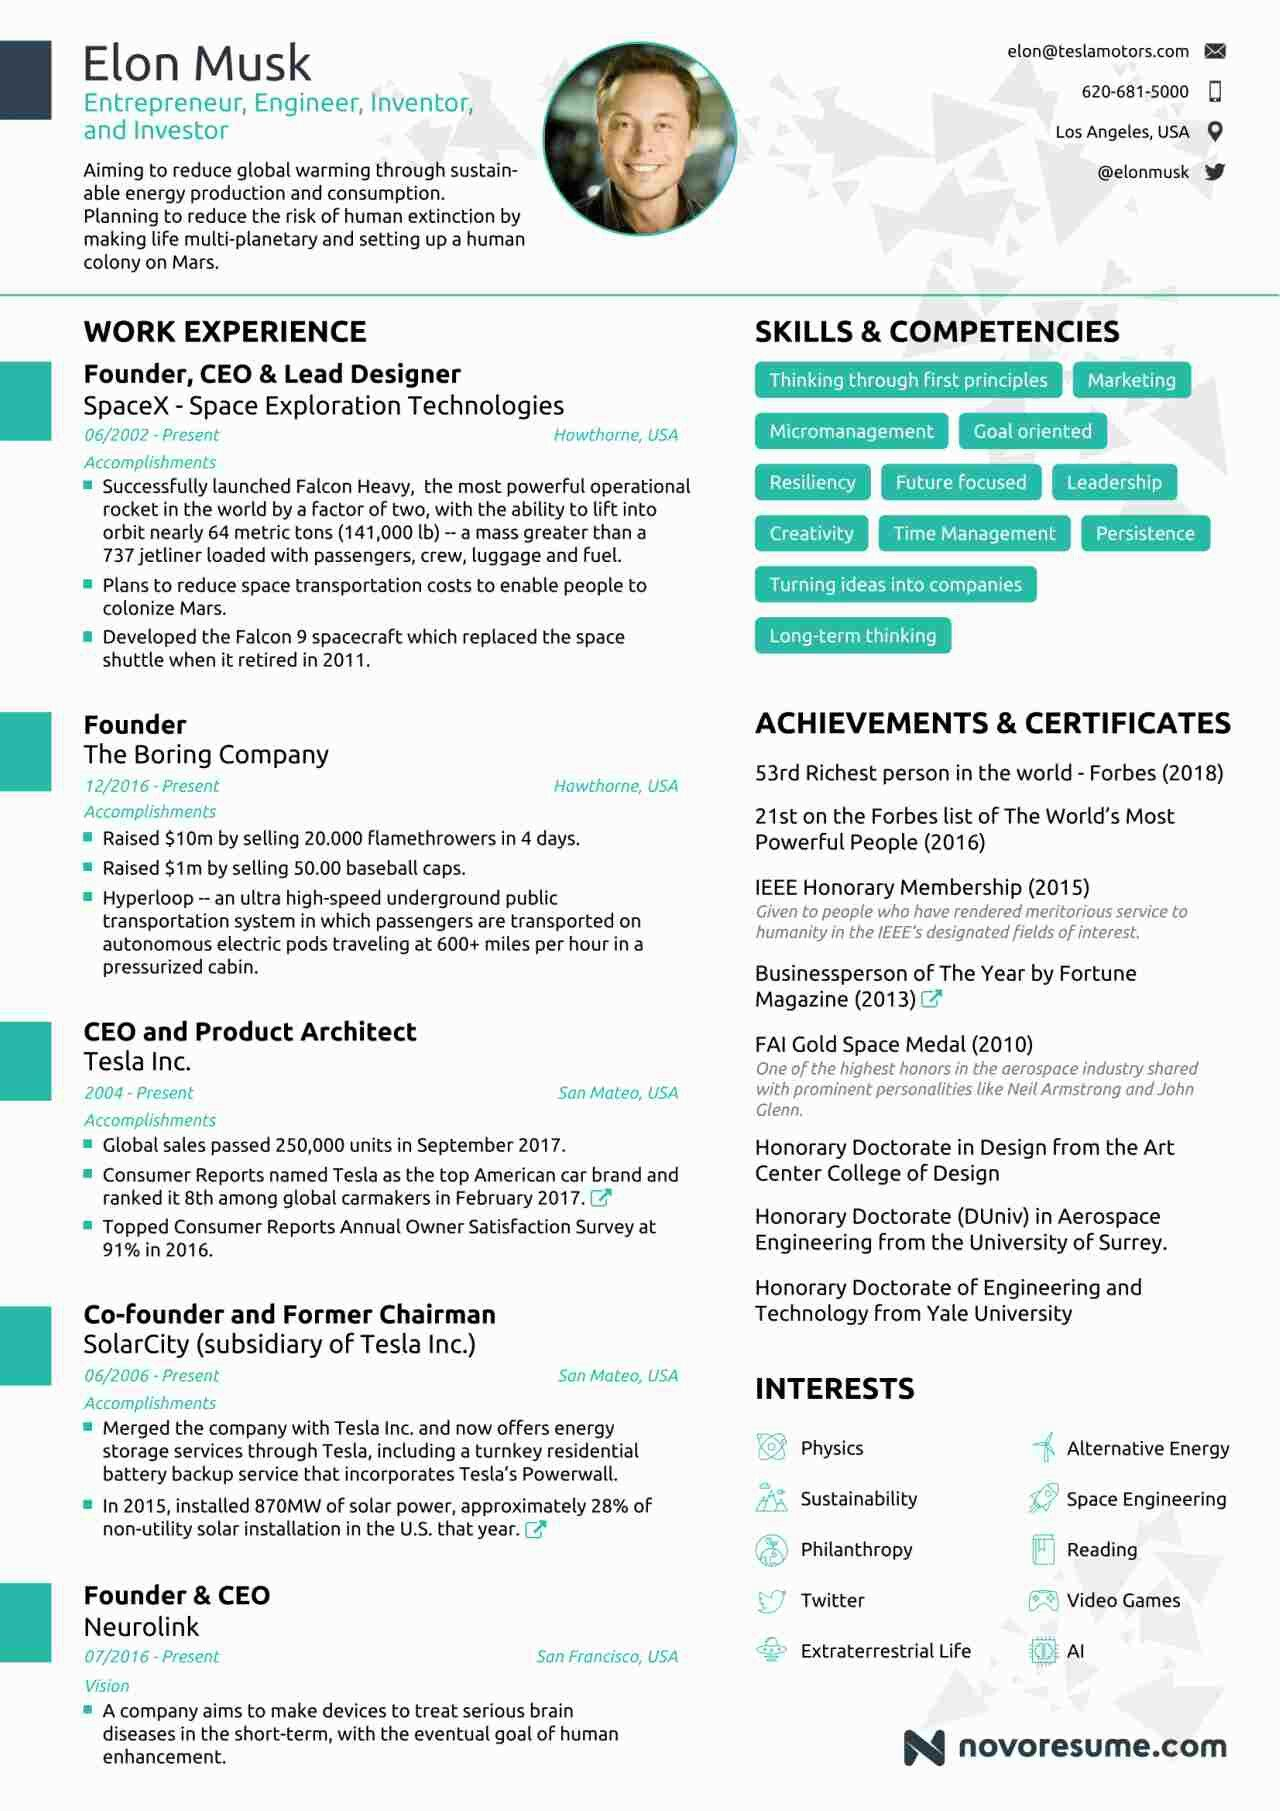 One page resume image by Arshpreet Singh on Success Good